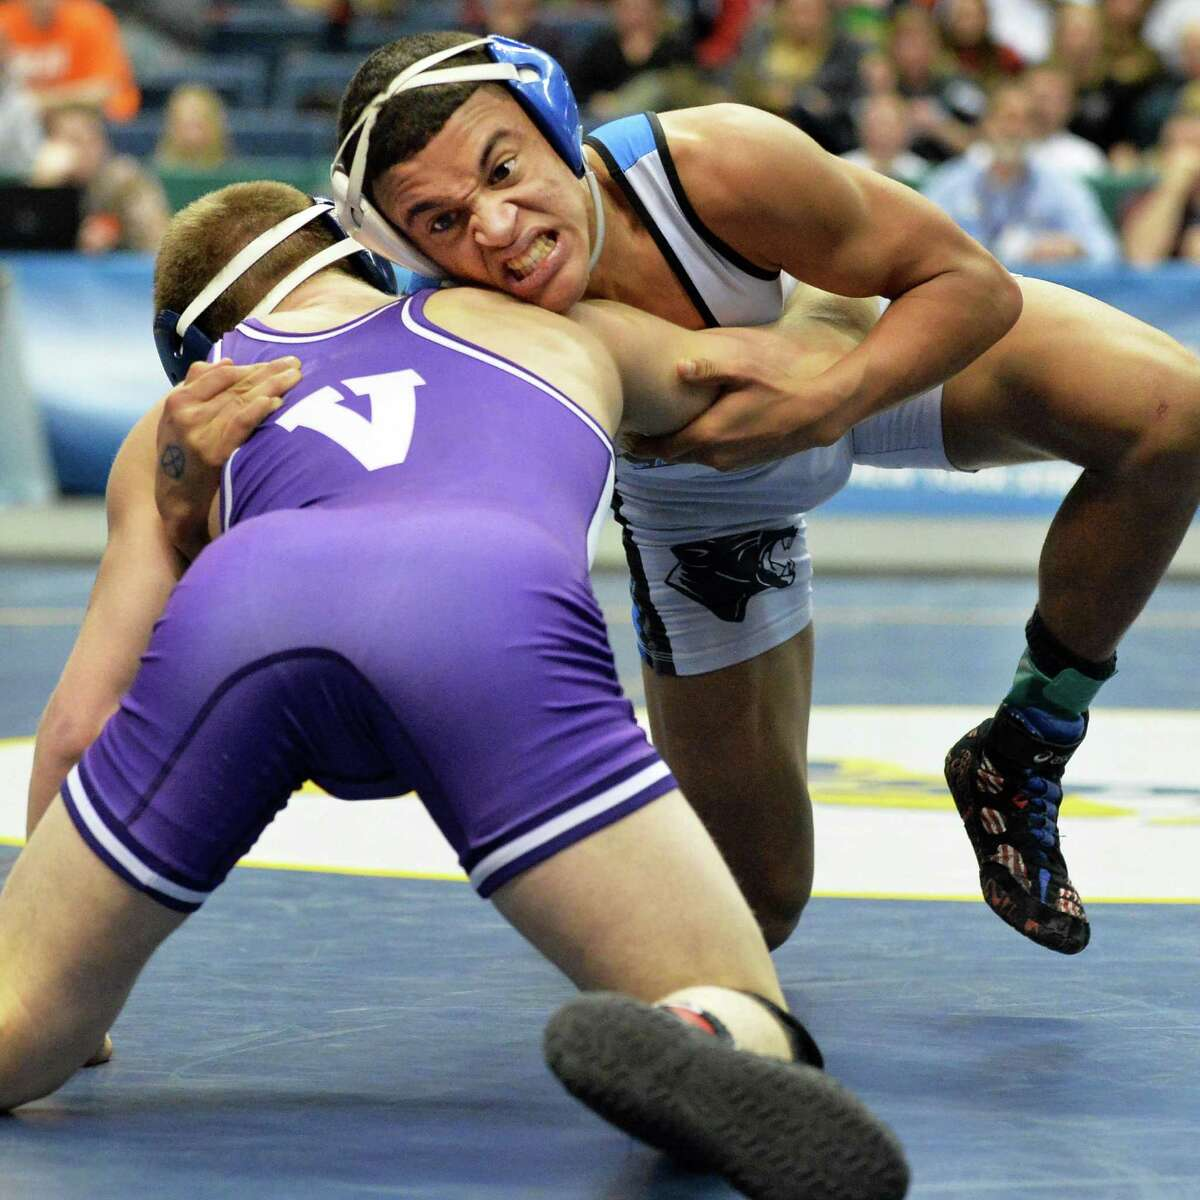 Hoosick Falls' Luis Weierbach, top, battles Wayne's Bryan Lantry during the NY State Wrestling Championships Saturdy March 1, 2014, at the Times Union Center in Albany, NY. (John Carl D'Annibale / Times Union)